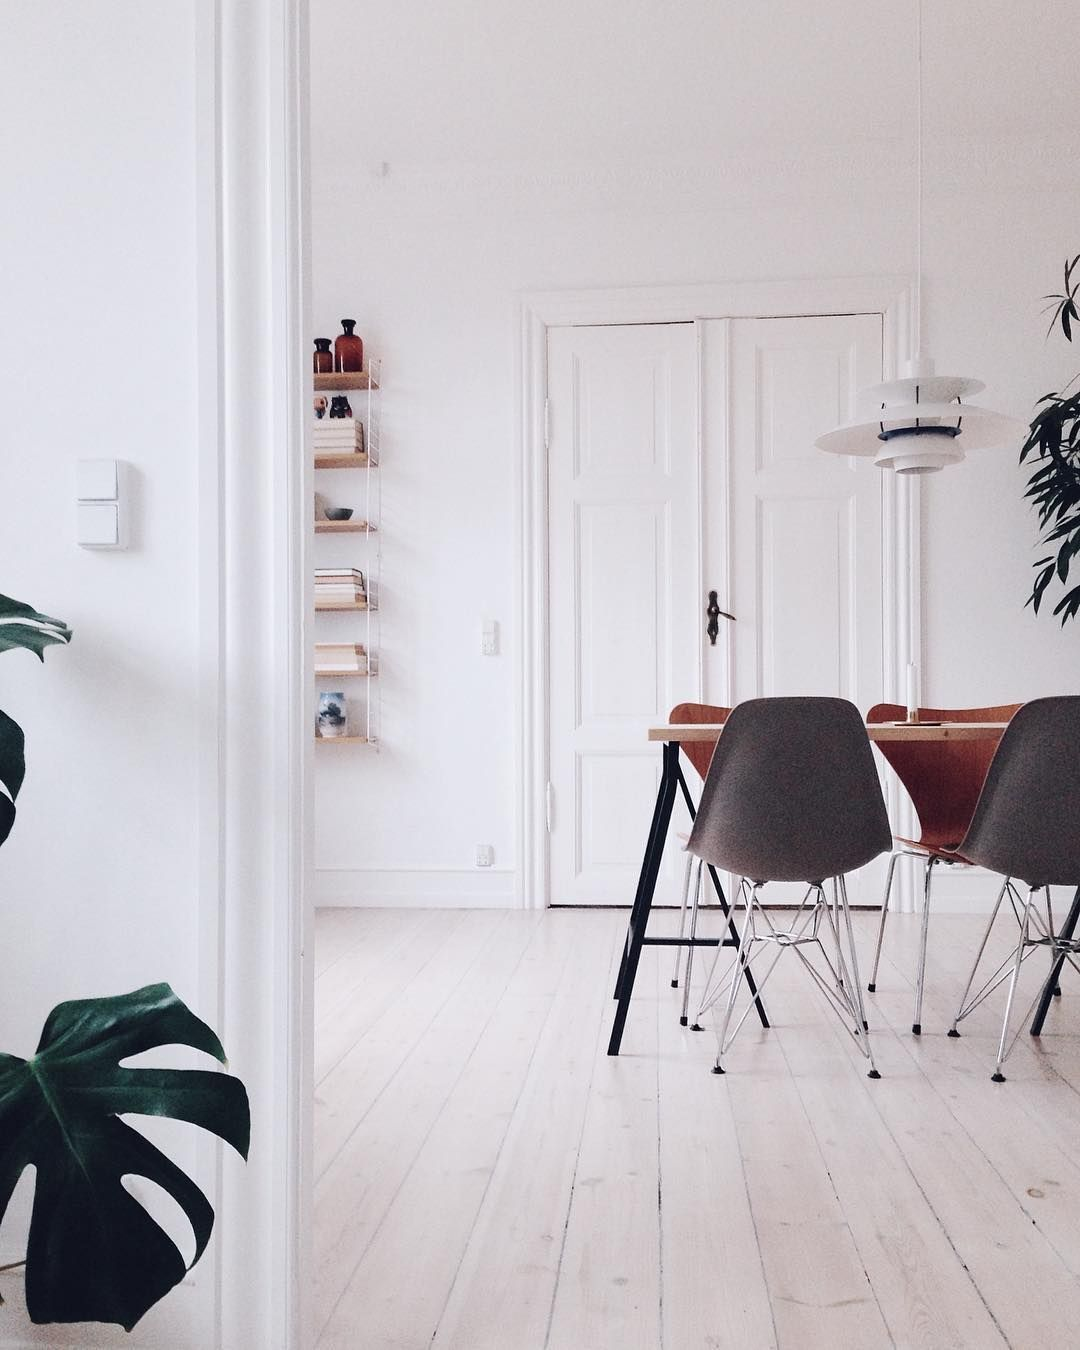 The home of Pernille Baastrup